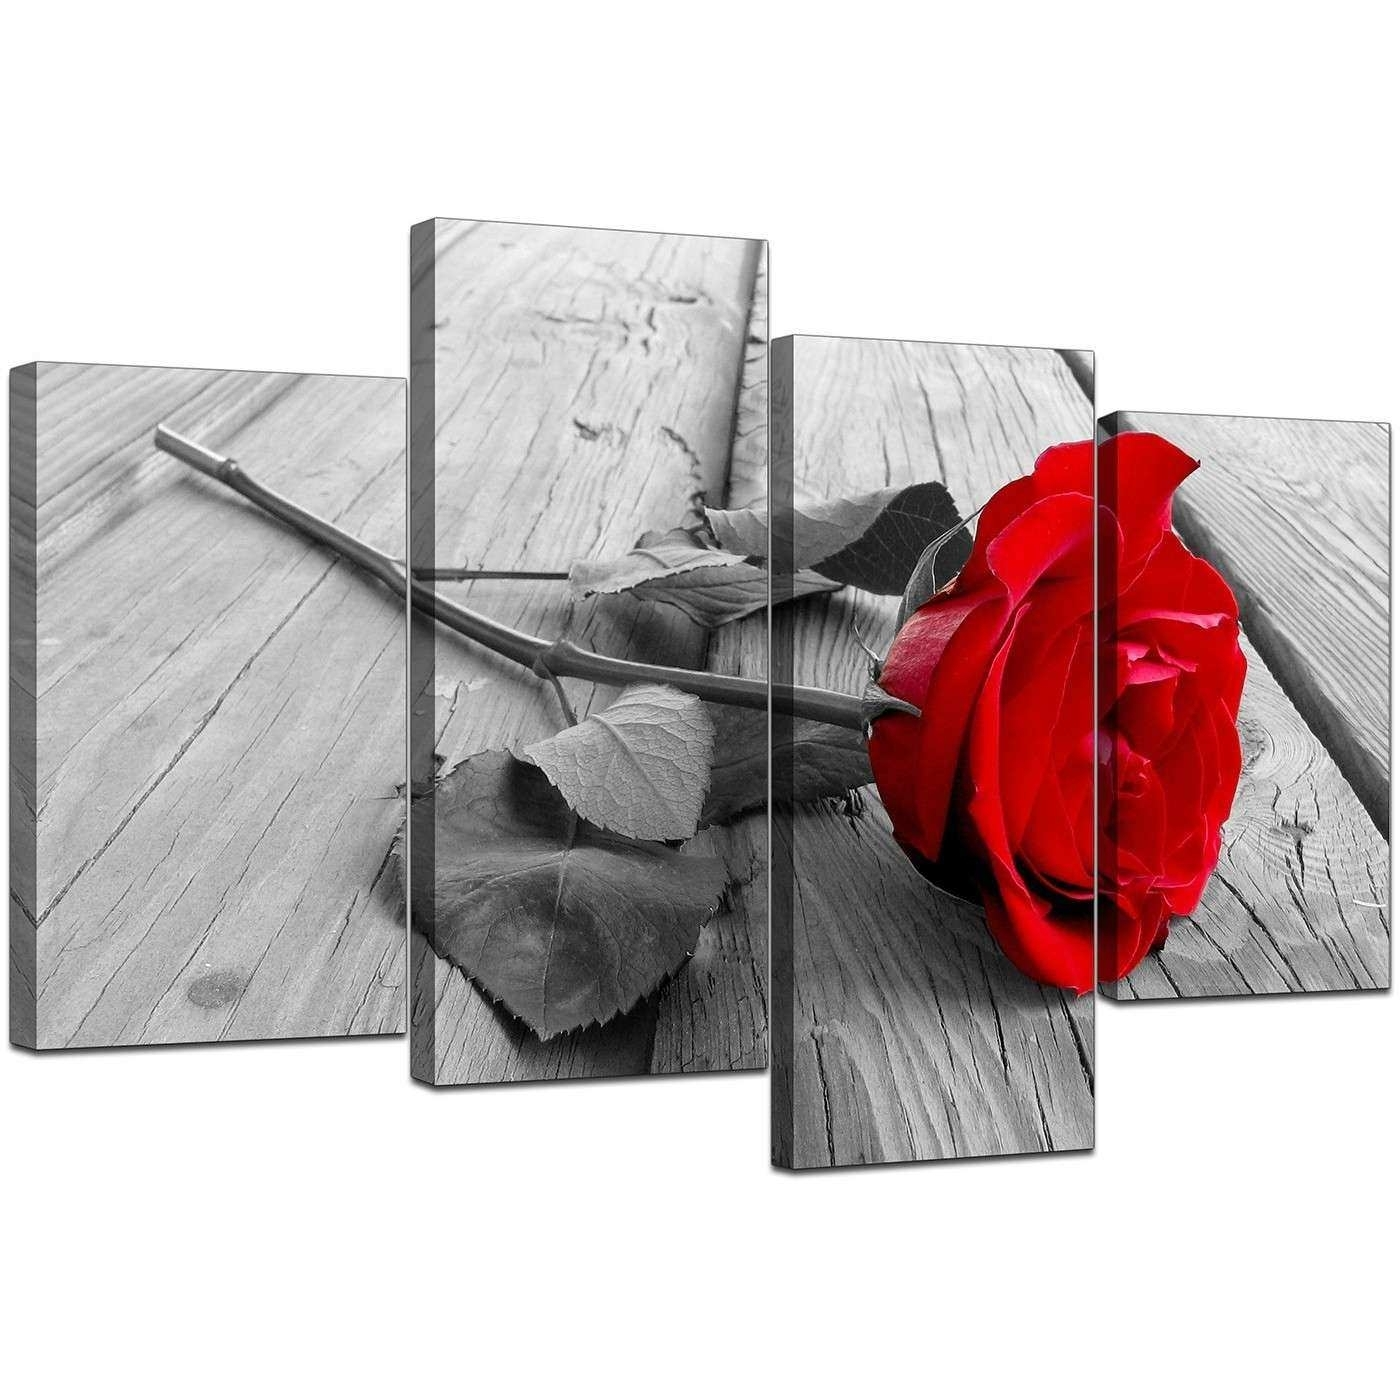 Red And Gray Wall Art Elegant Floral Canvas Wall Art In Red Black With Regard To Most Current Red And Black Canvas Wall Art (Gallery 19 of 20)